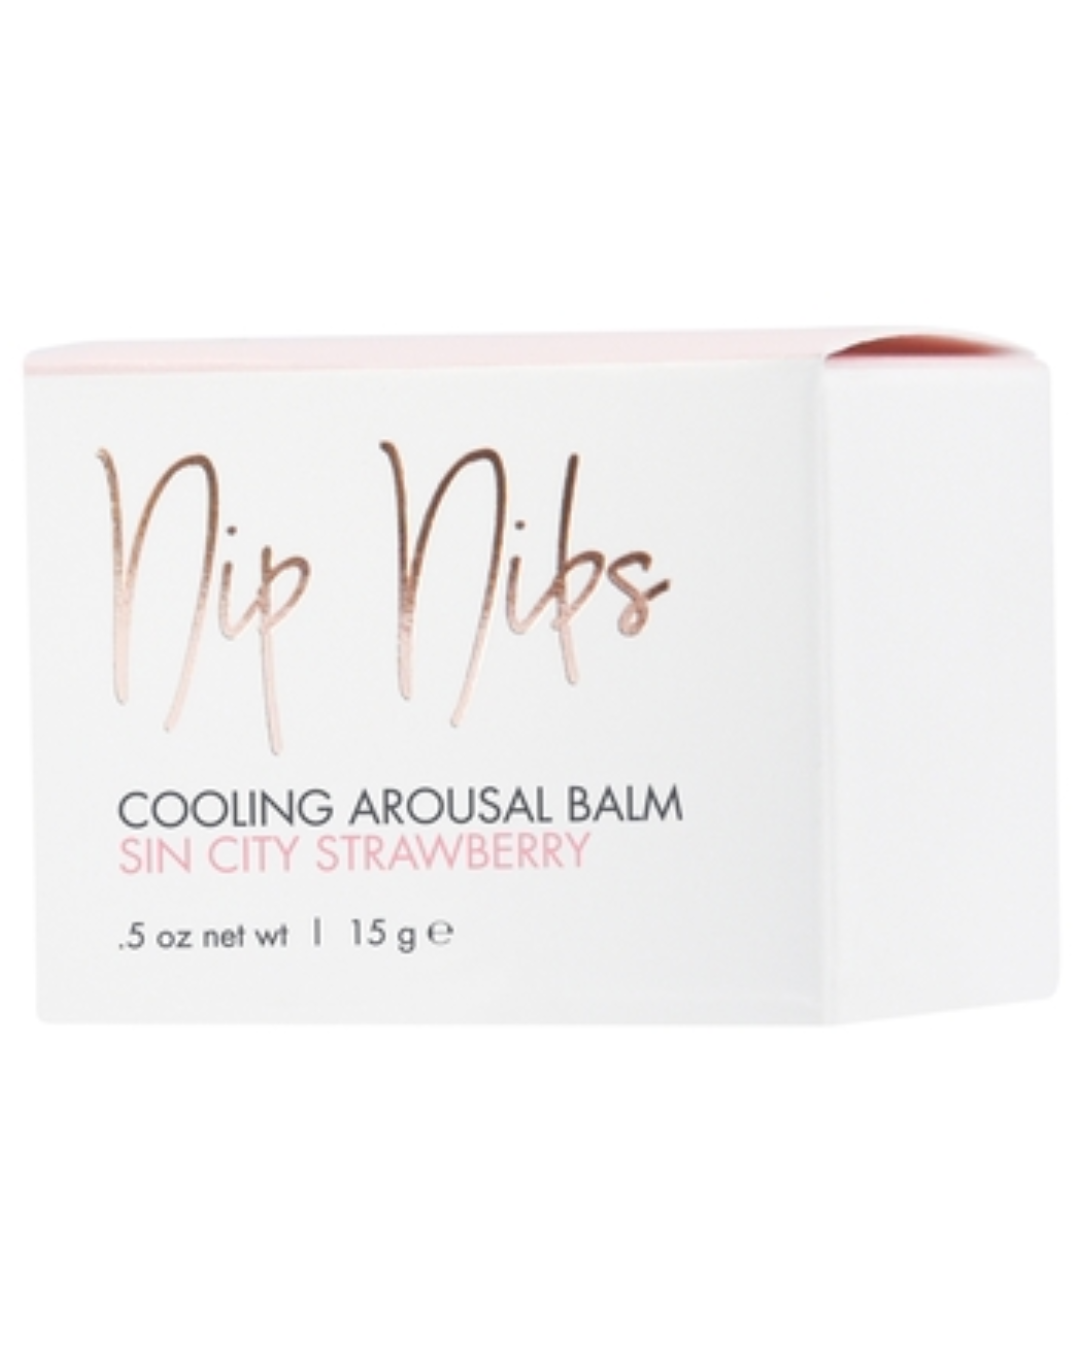 CG Nip Nibs Cooling Arousal Balm .5 oz - Sin City Strawberry box